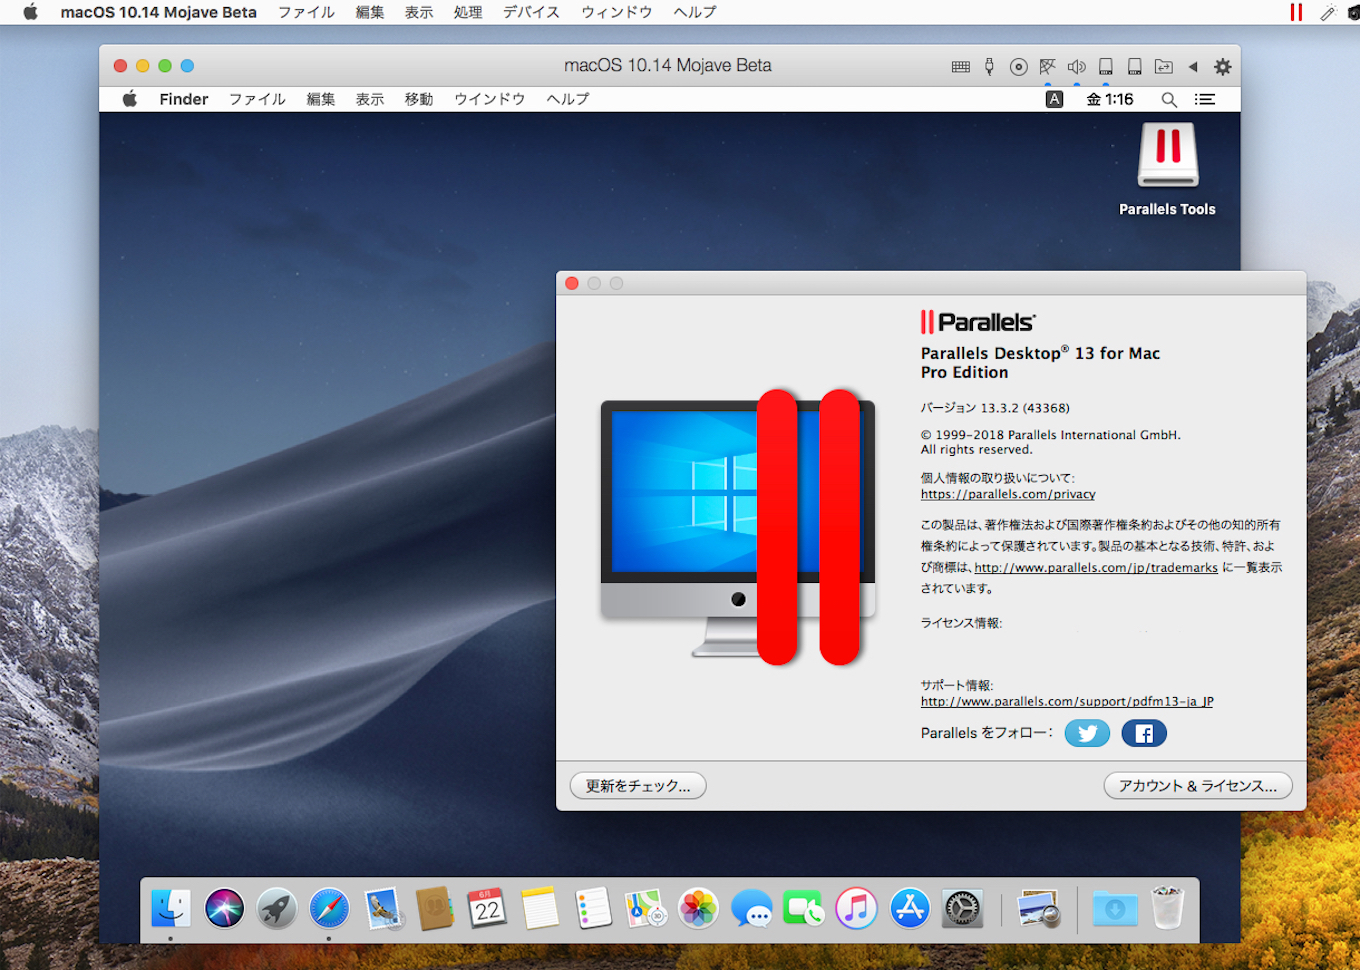 Parallels Desktop v13.3.2 for Macアップデート